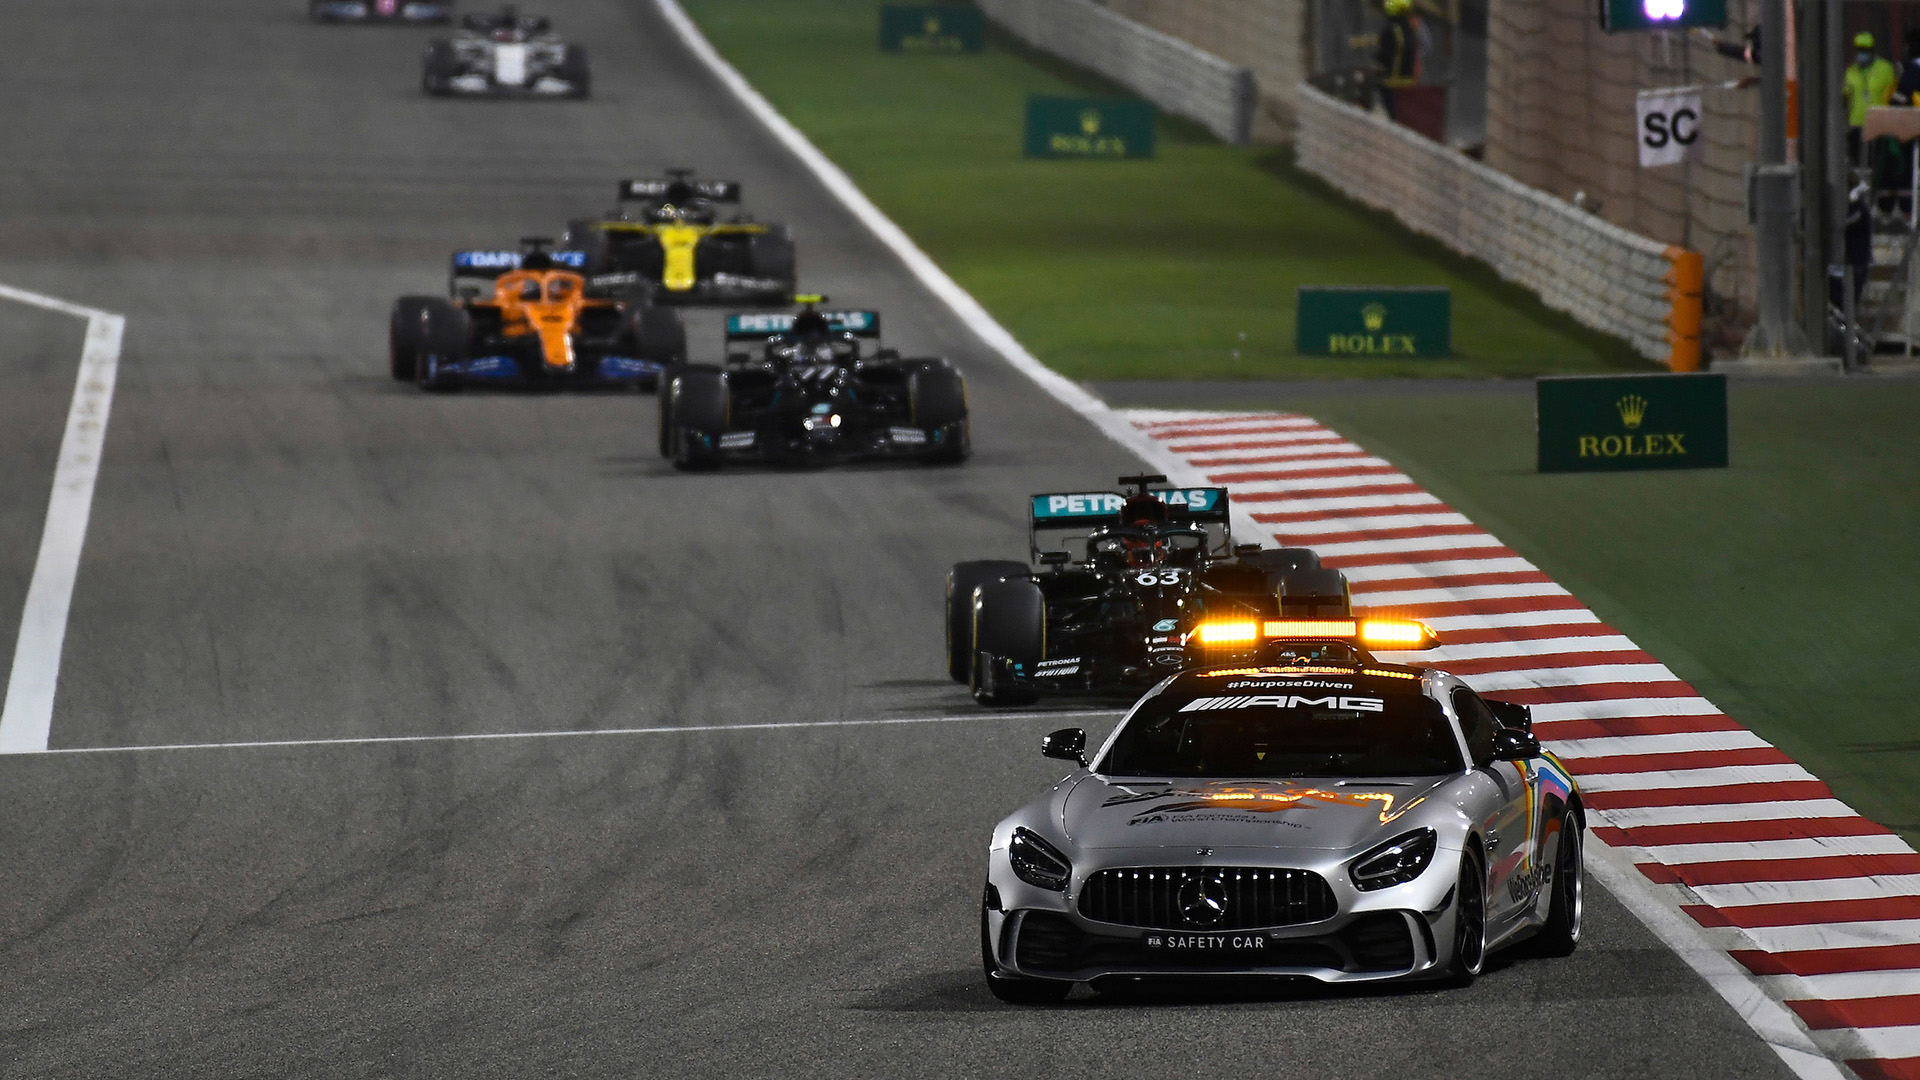 George Russell behind the safety car at the 2020 Sakhir Grand Prix